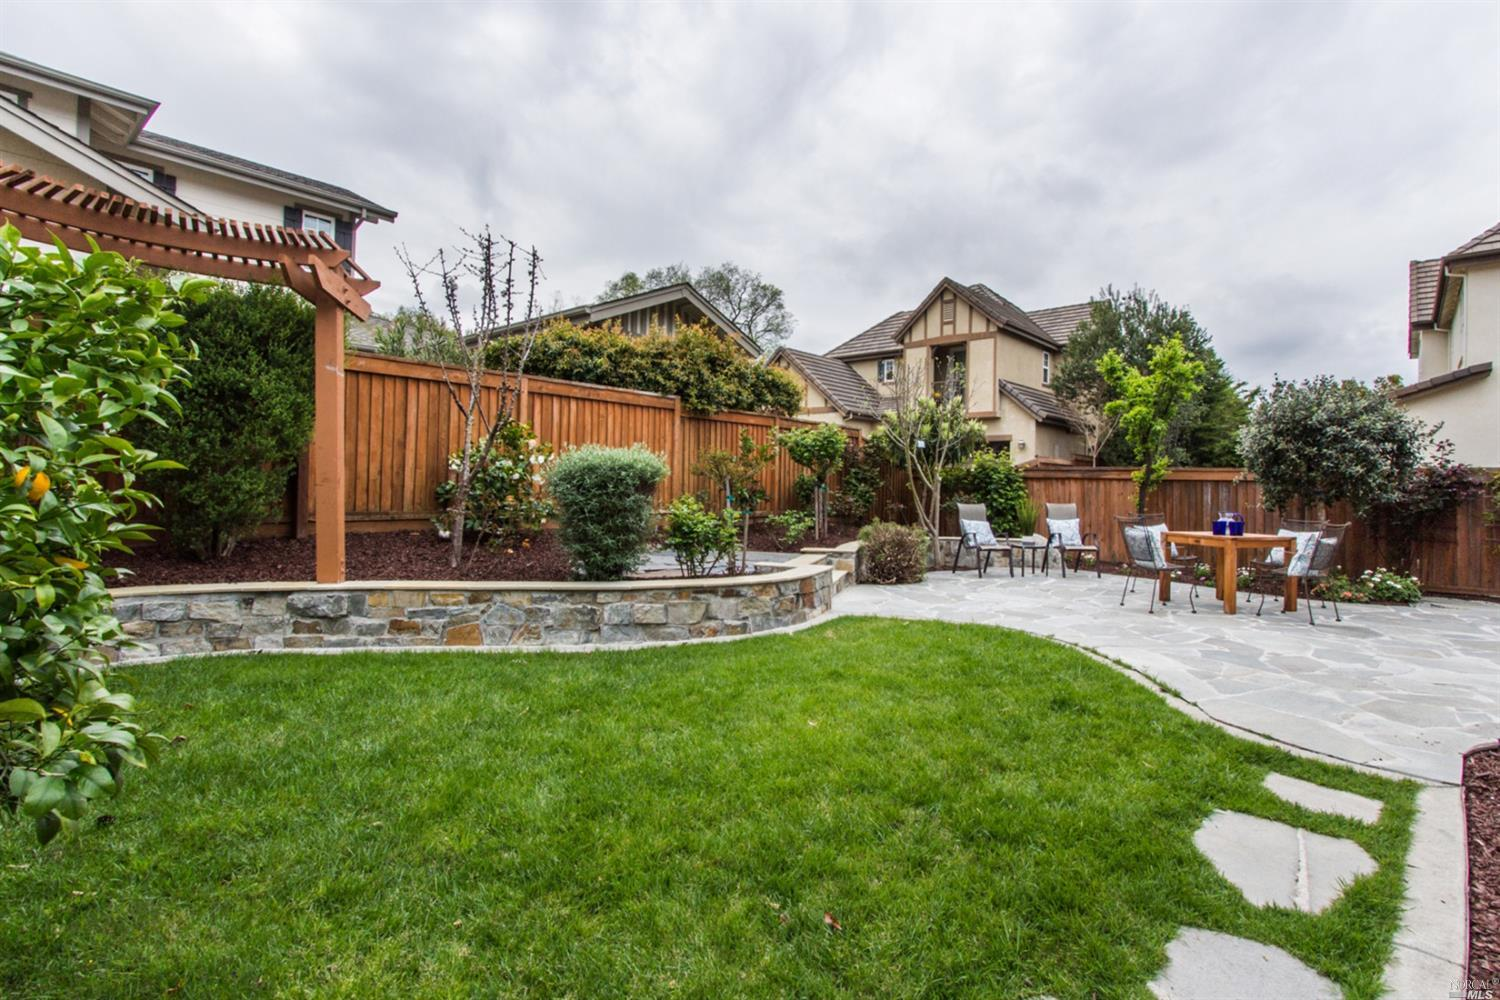 Additional photo for property listing at 55 Oak Grove Drive  NOVATO, CALIFORNIA 94949